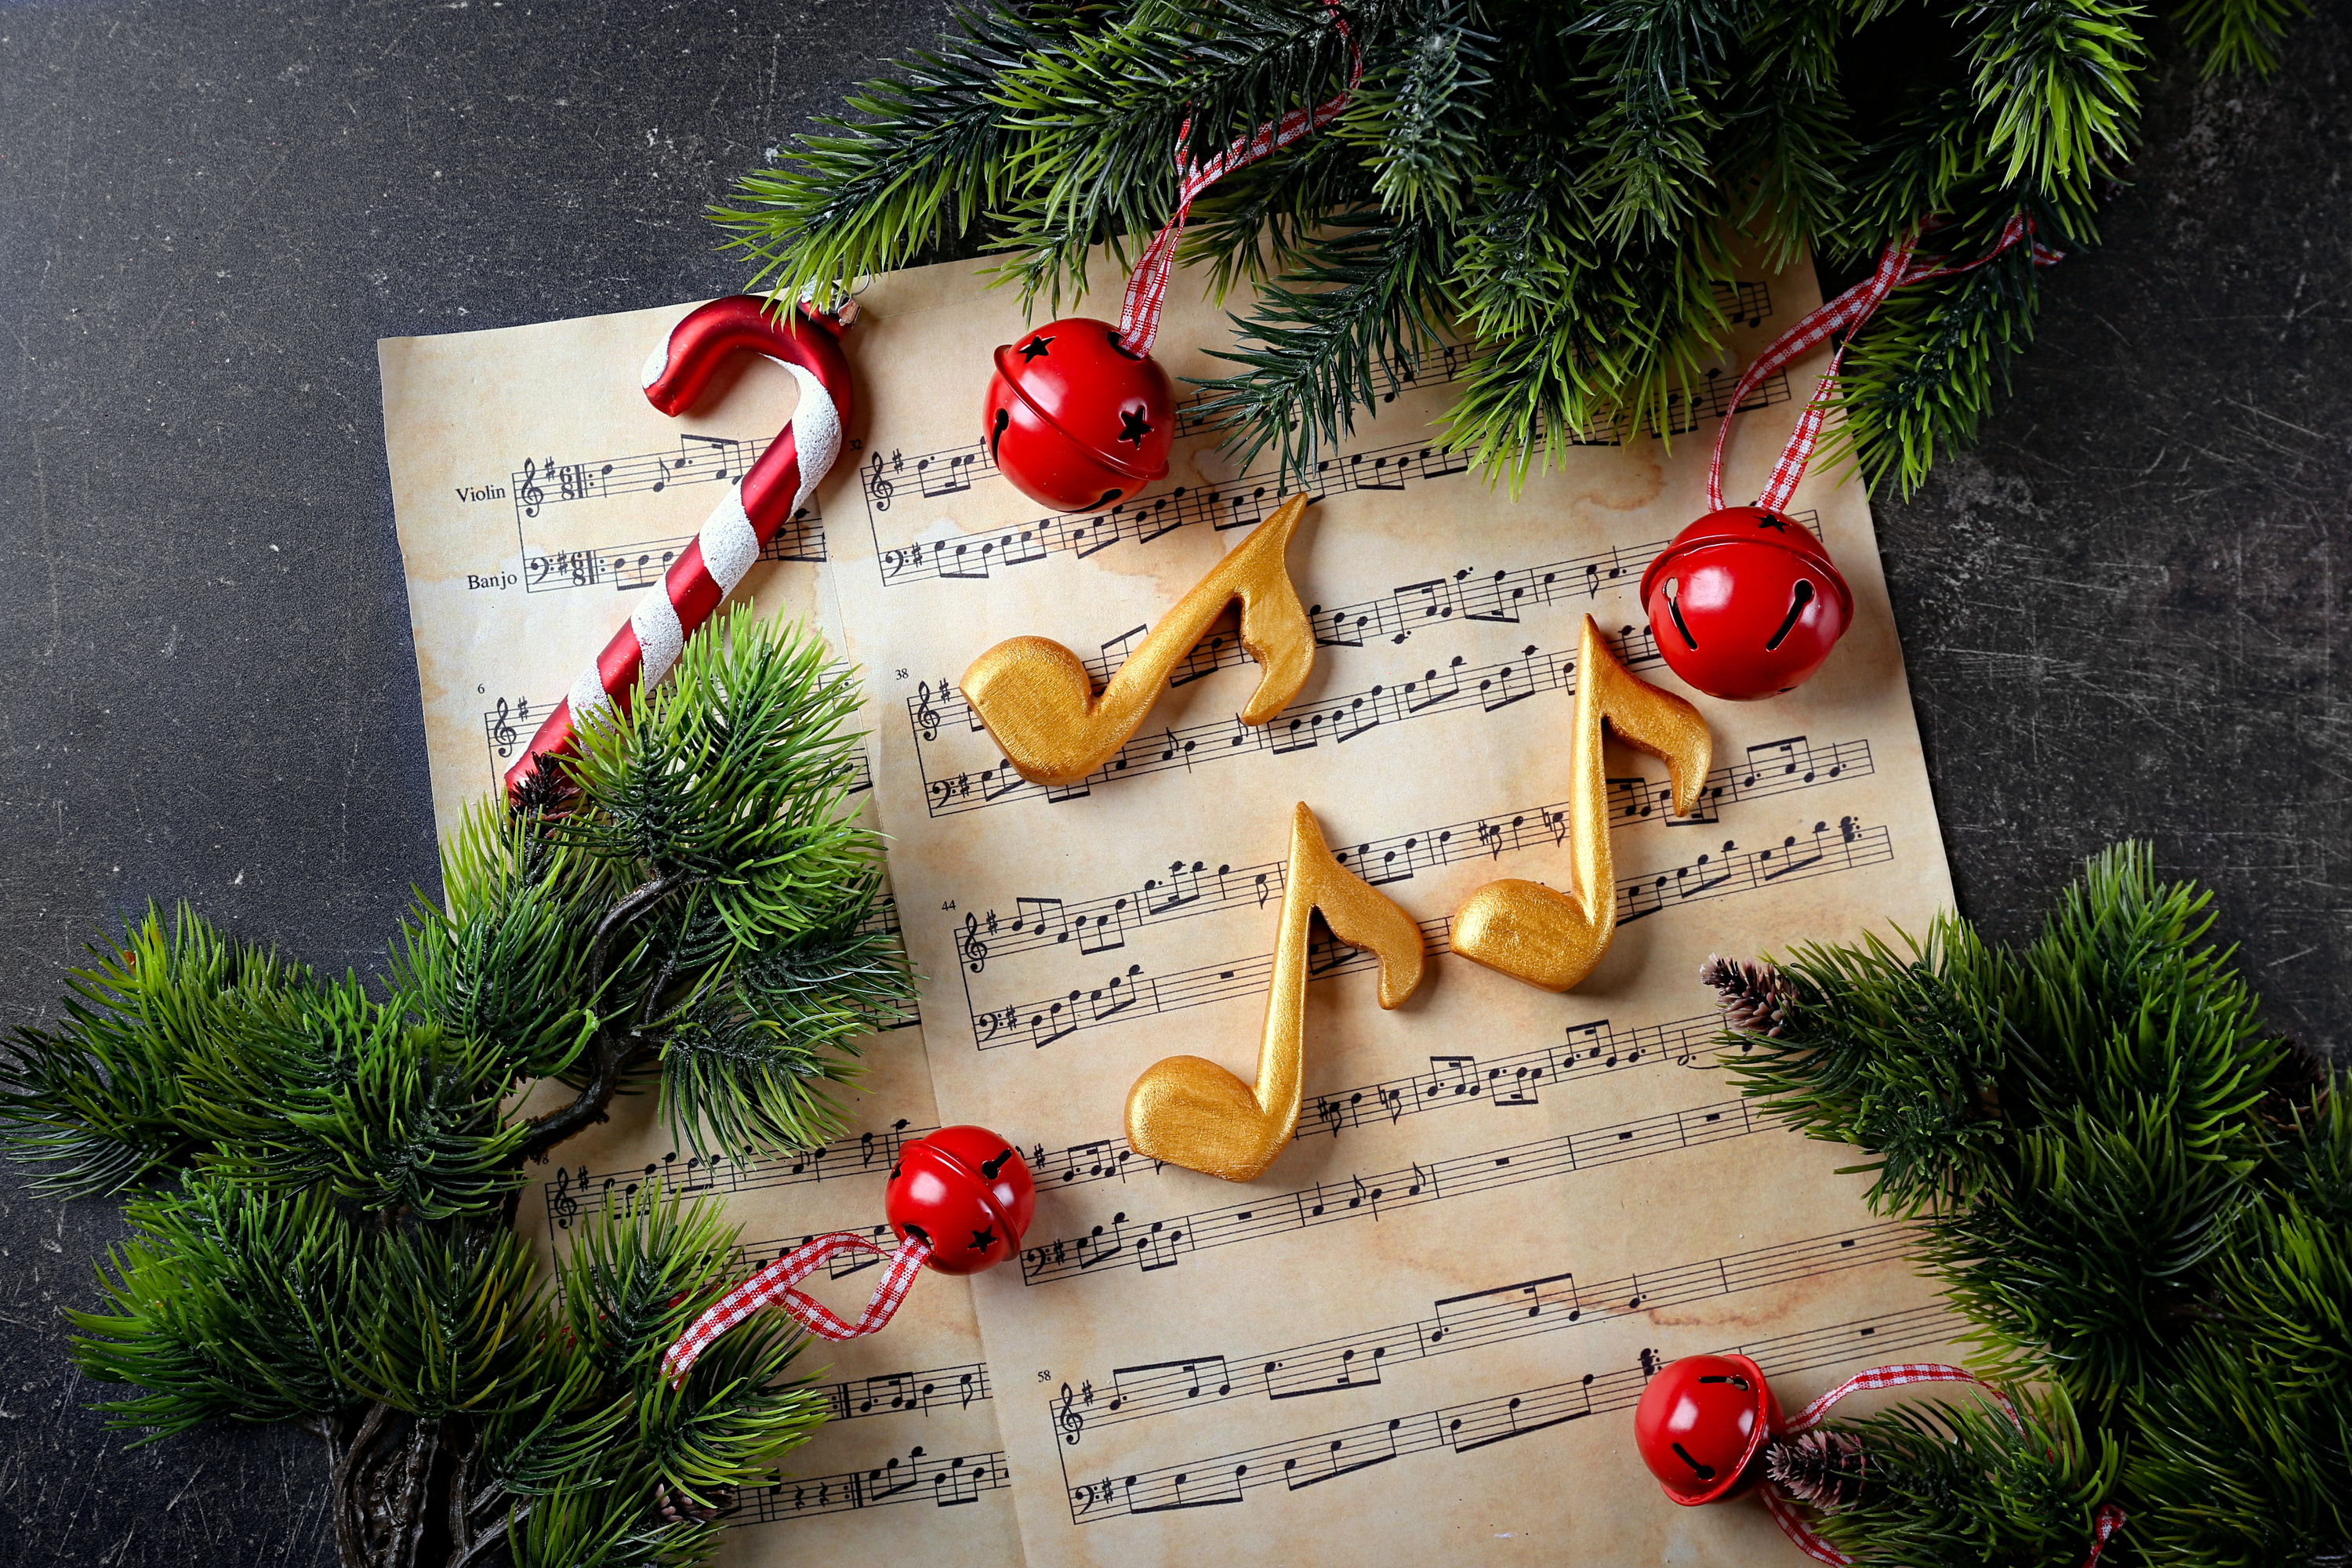 15 Best Christmas Songs for Kids and Families